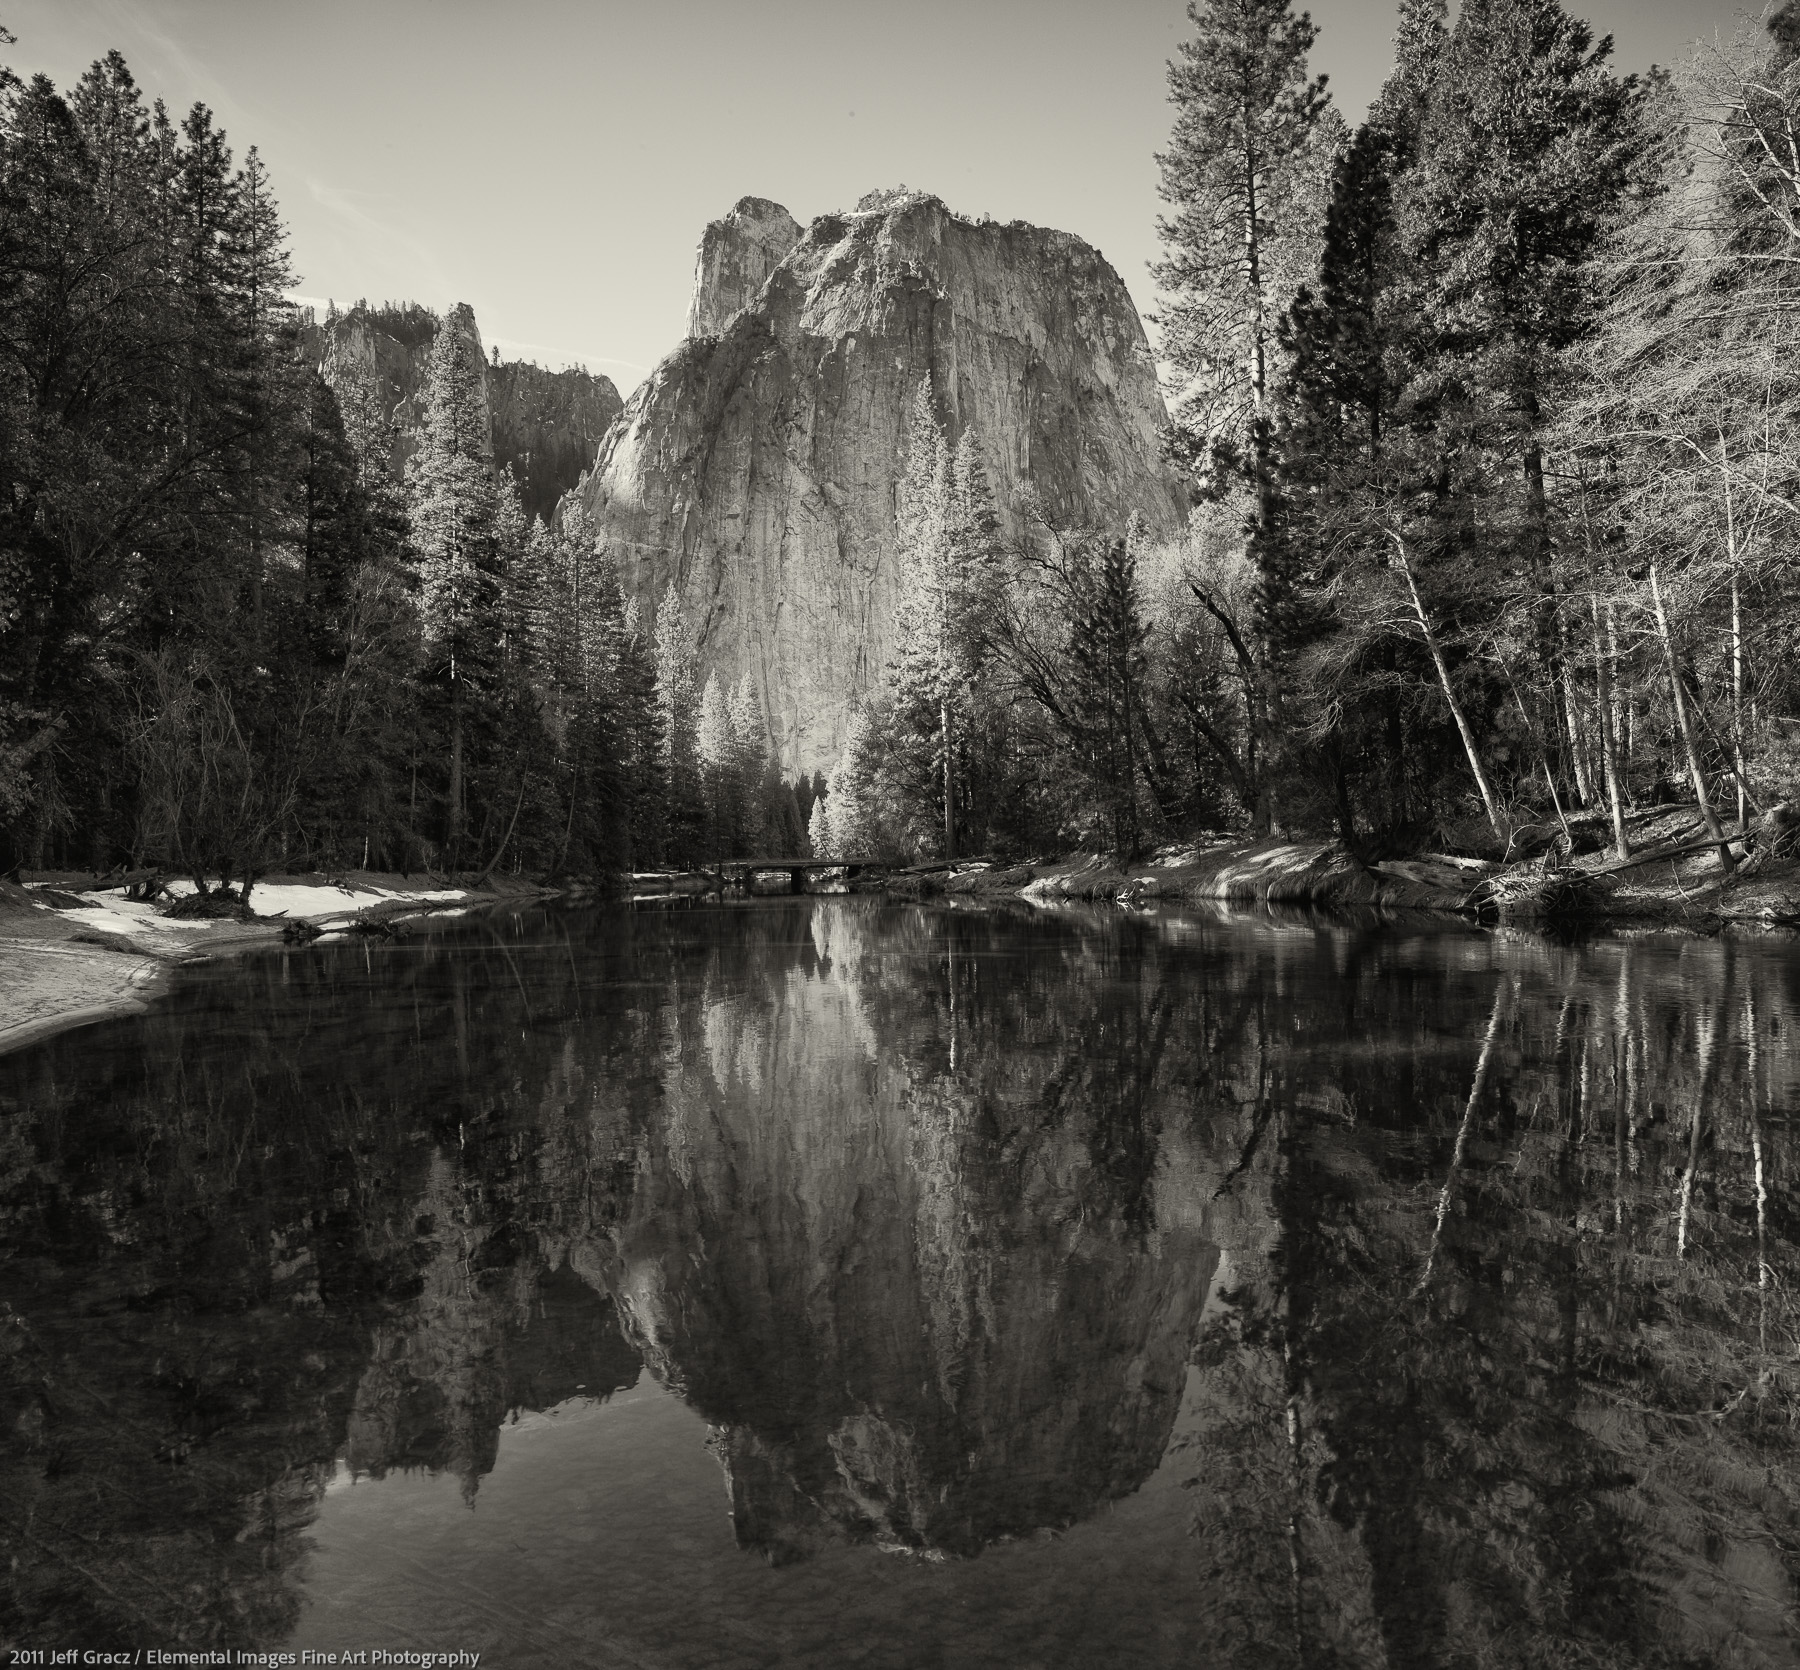 Catherdral Rocks and Merced River | Yosemite National Park | CA | USA - © 2011 Jeff Gracz / Elemental Images Fine Art Photography - All Rights Reserved Worldwide